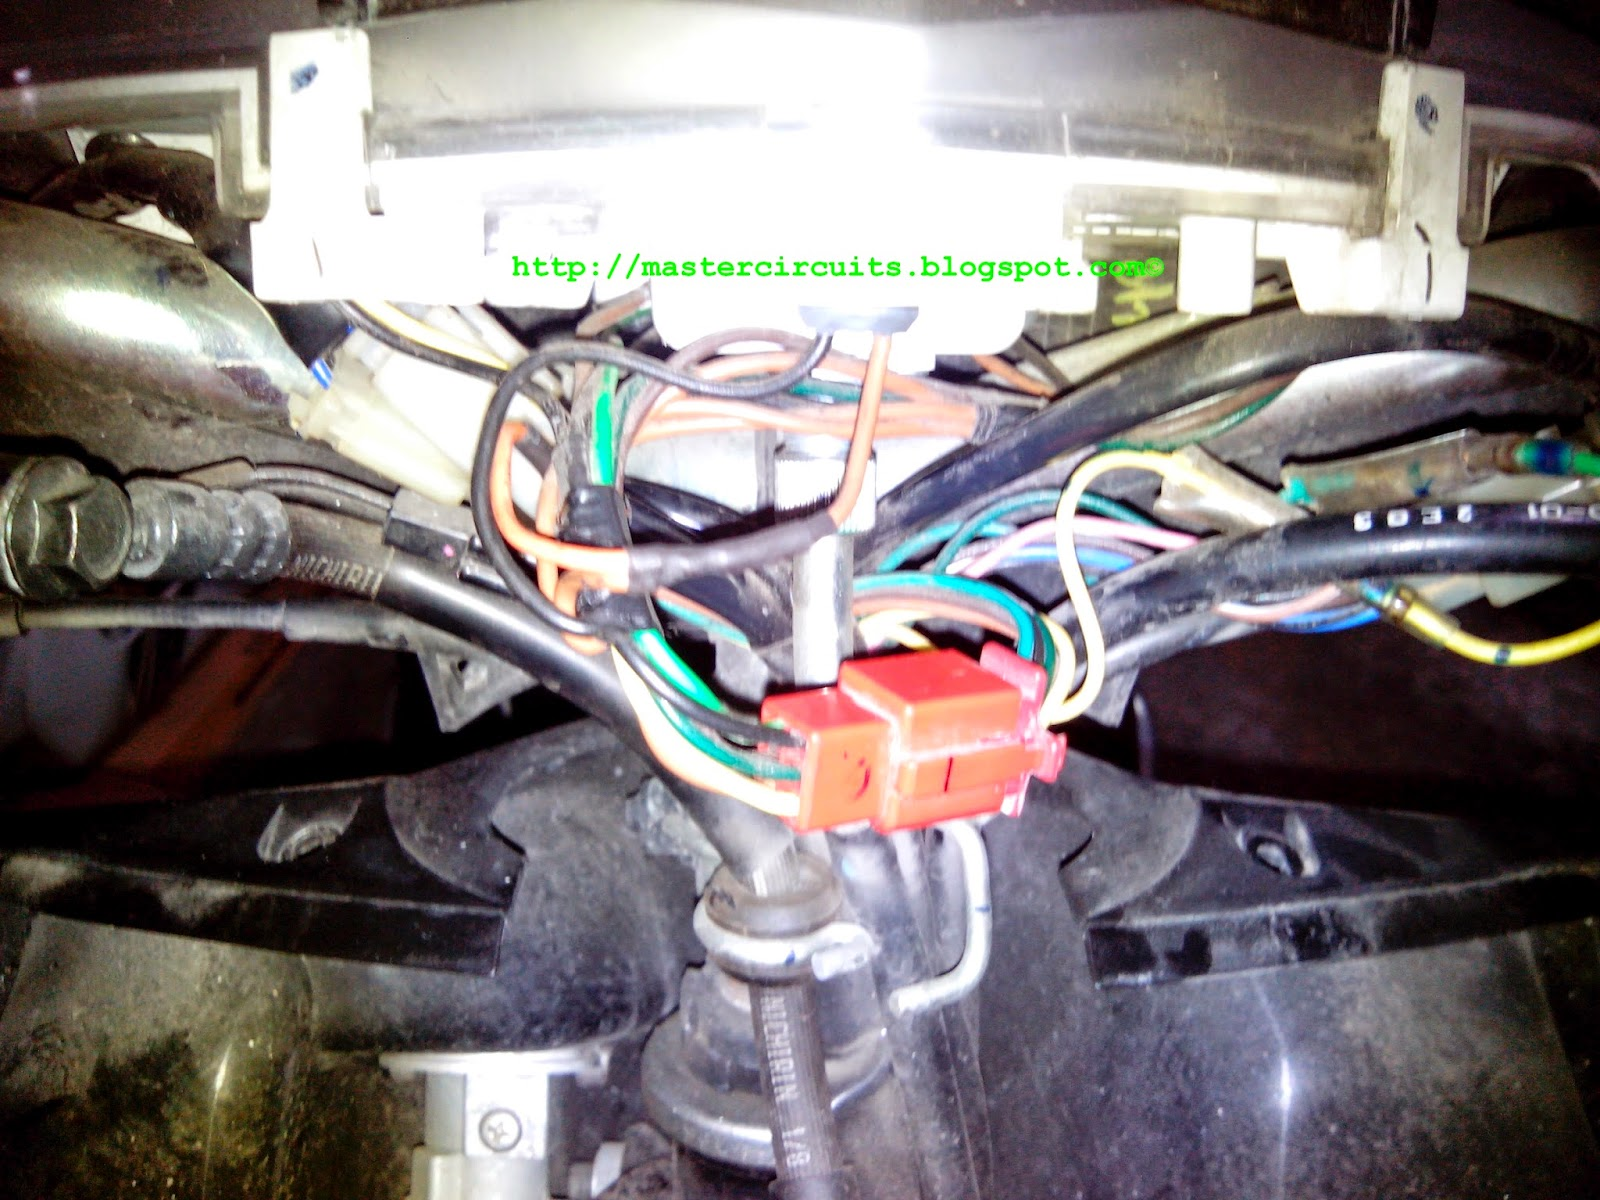 Wiring Diagram Of Mio Sporty : Info manual yamaha mio soul led headlight conversion